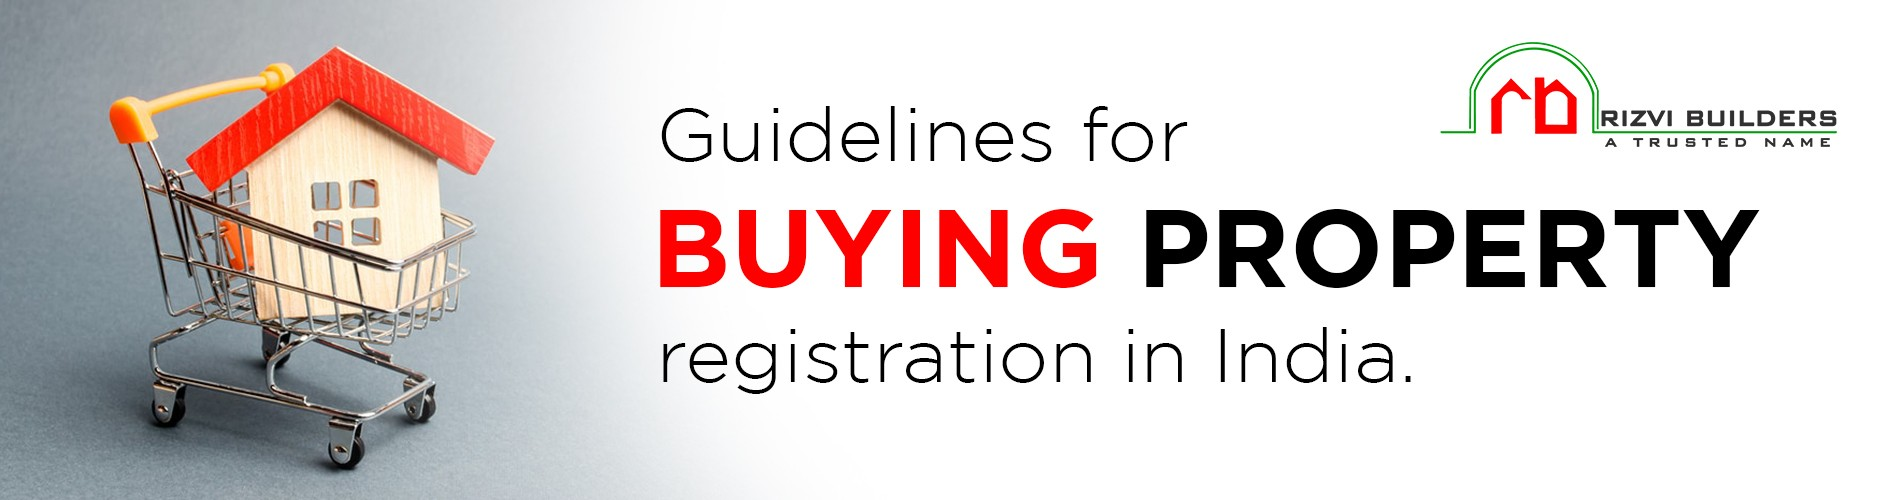 Guidelines for purchasing and registering property in India